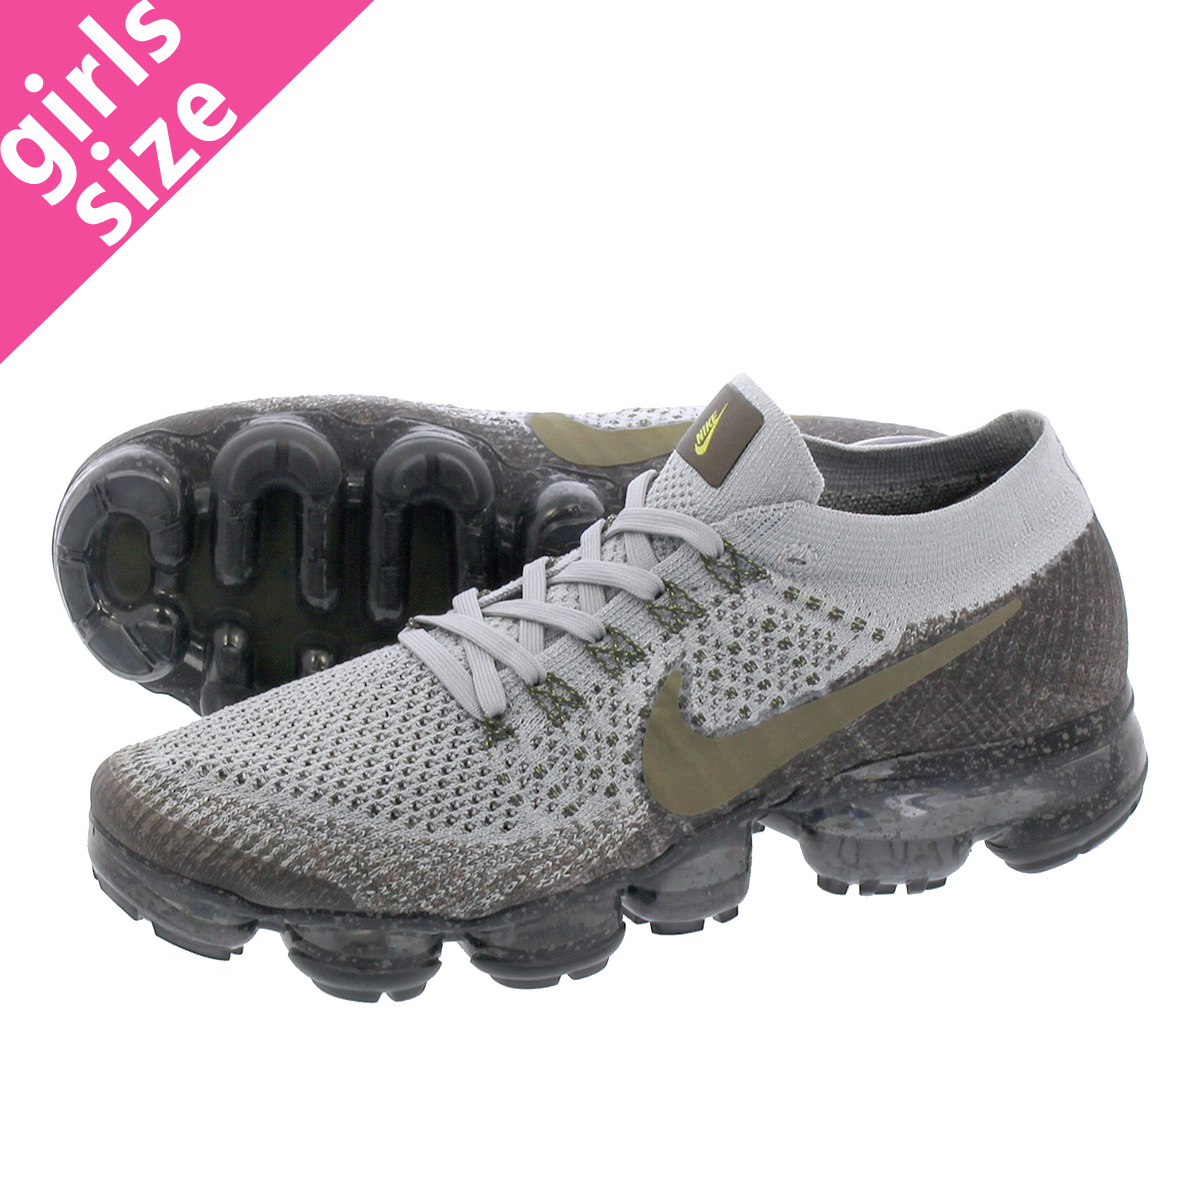 low priced 06cf1 14d21 NIKE WMNS AIR VAPORMAX FLYKNIT Nike laboratory women vapor max fried food  knit MIDNIGHT FOG/MEDIUM OLIVE/GREY 899,472-009